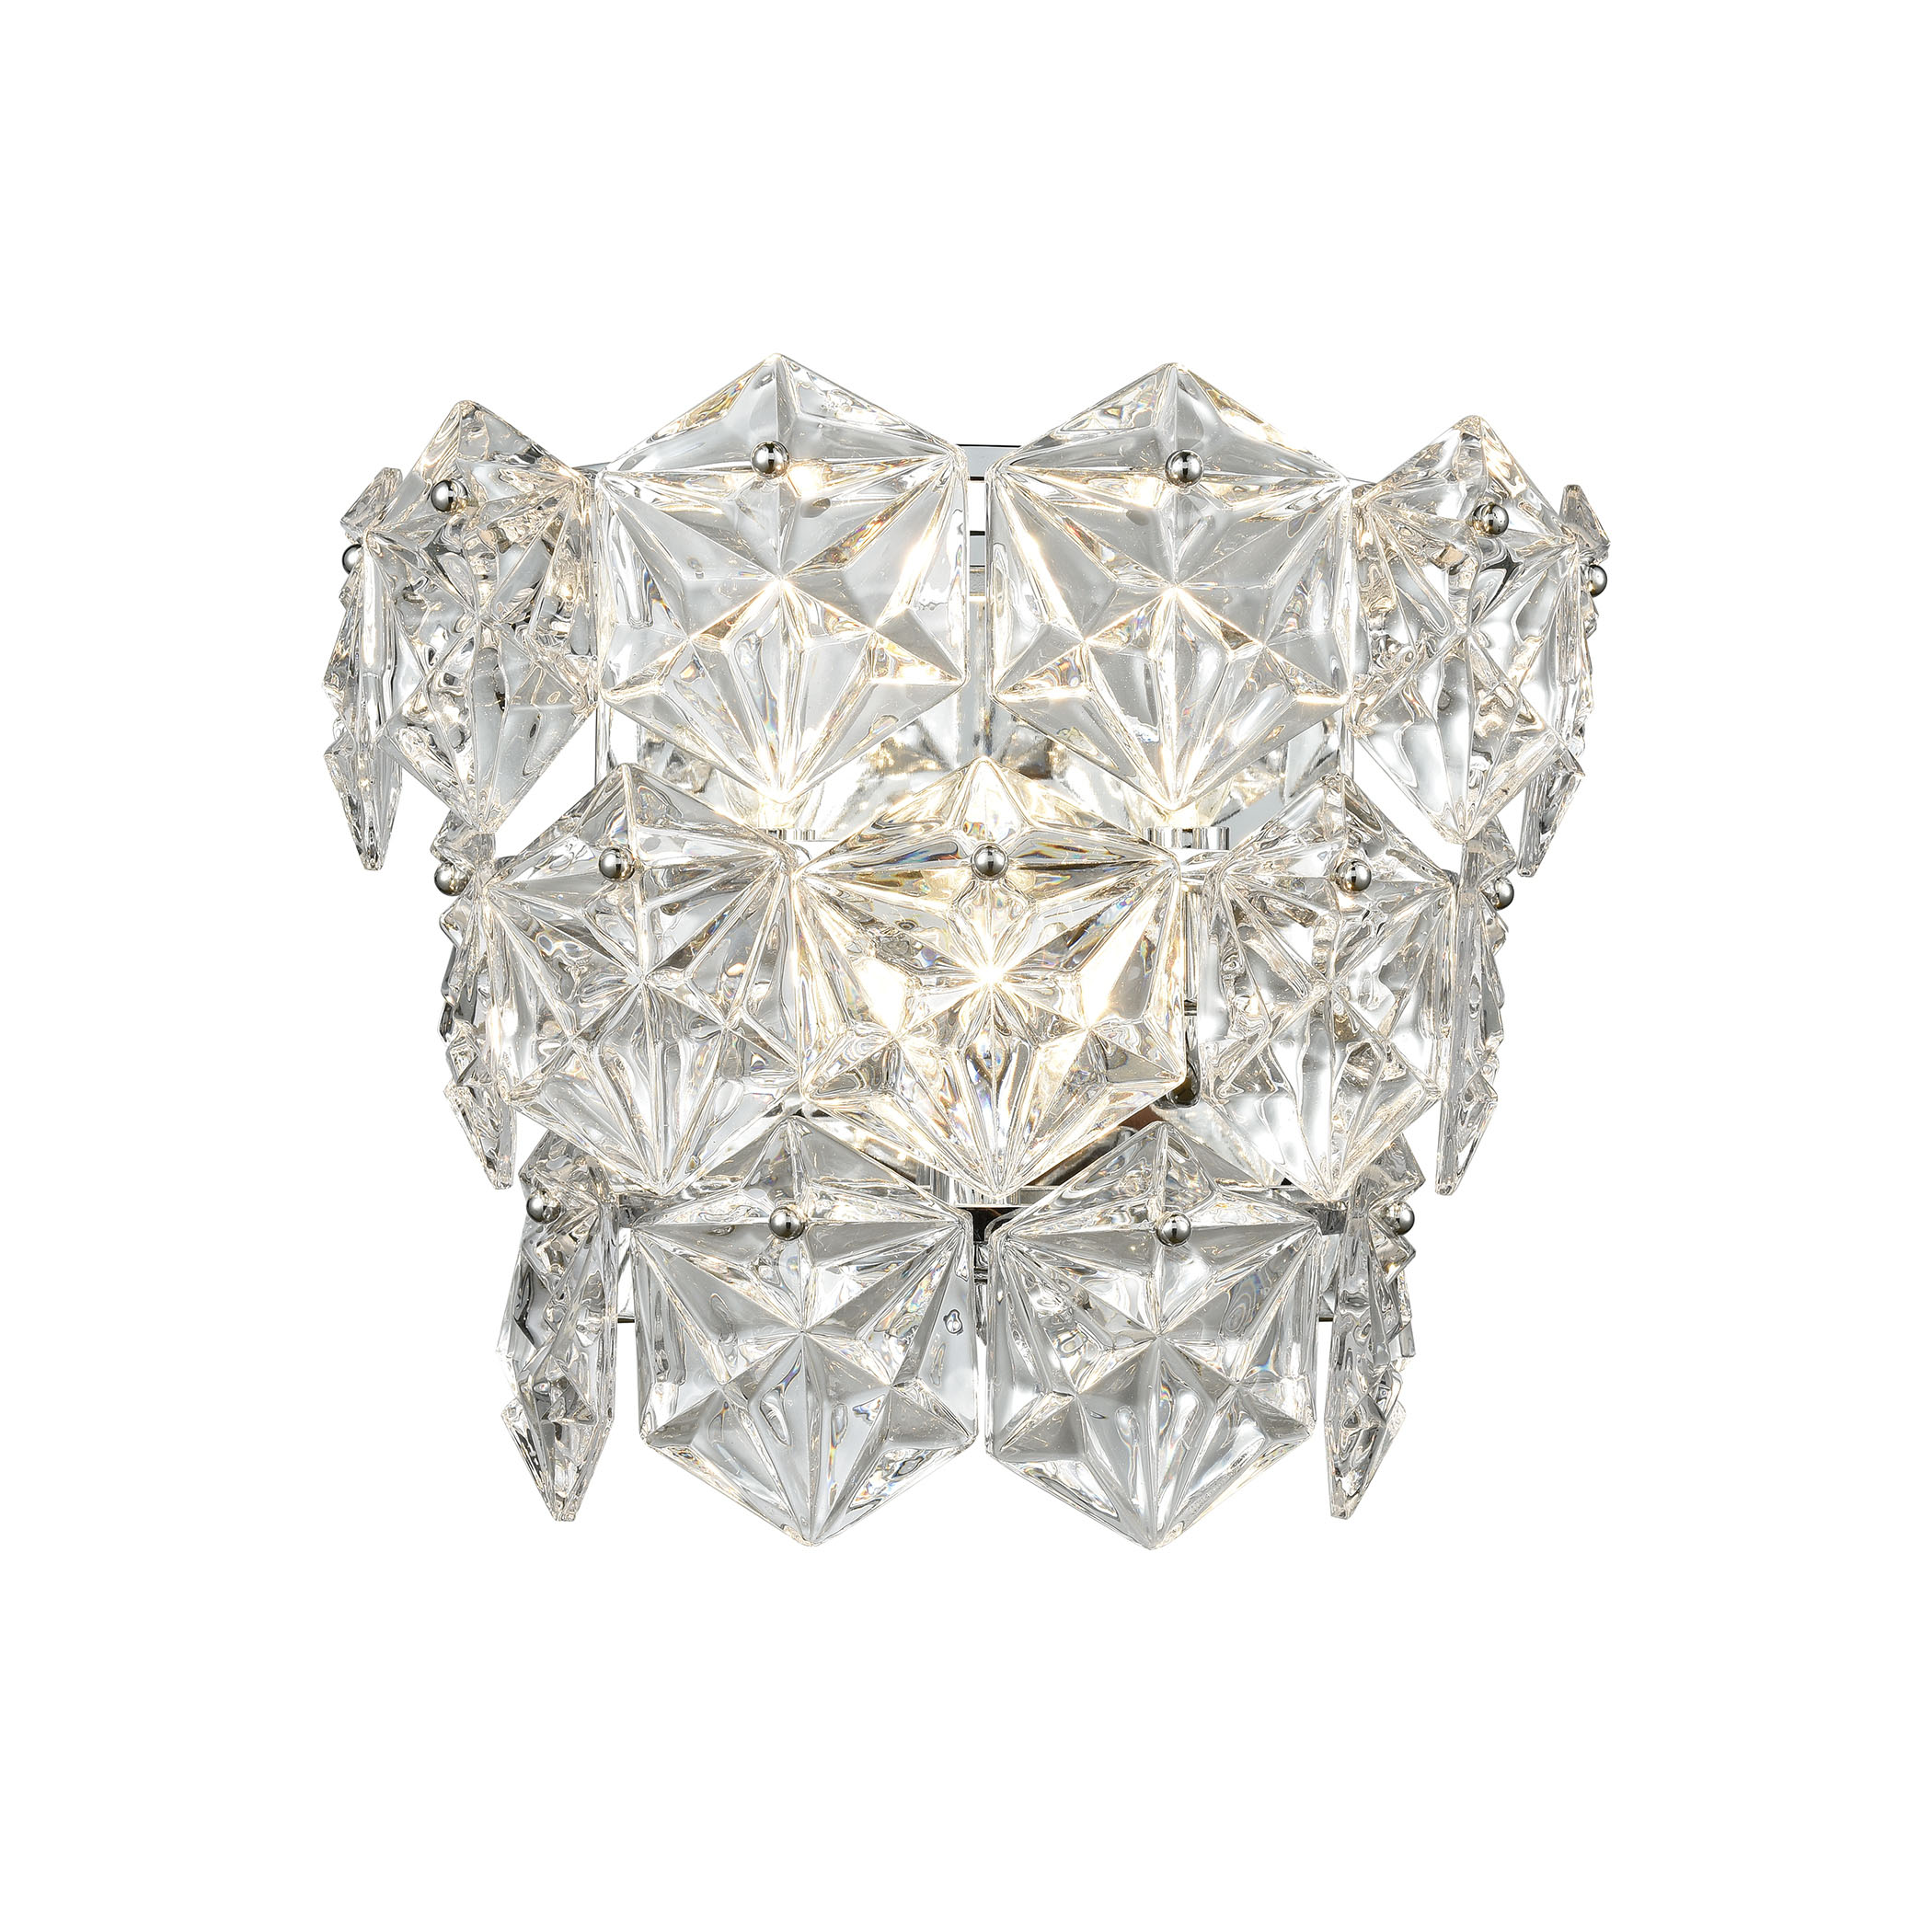 Lavique 3-Light Sconce in Polished Chrome with Clear Crystal_EL-81242/3